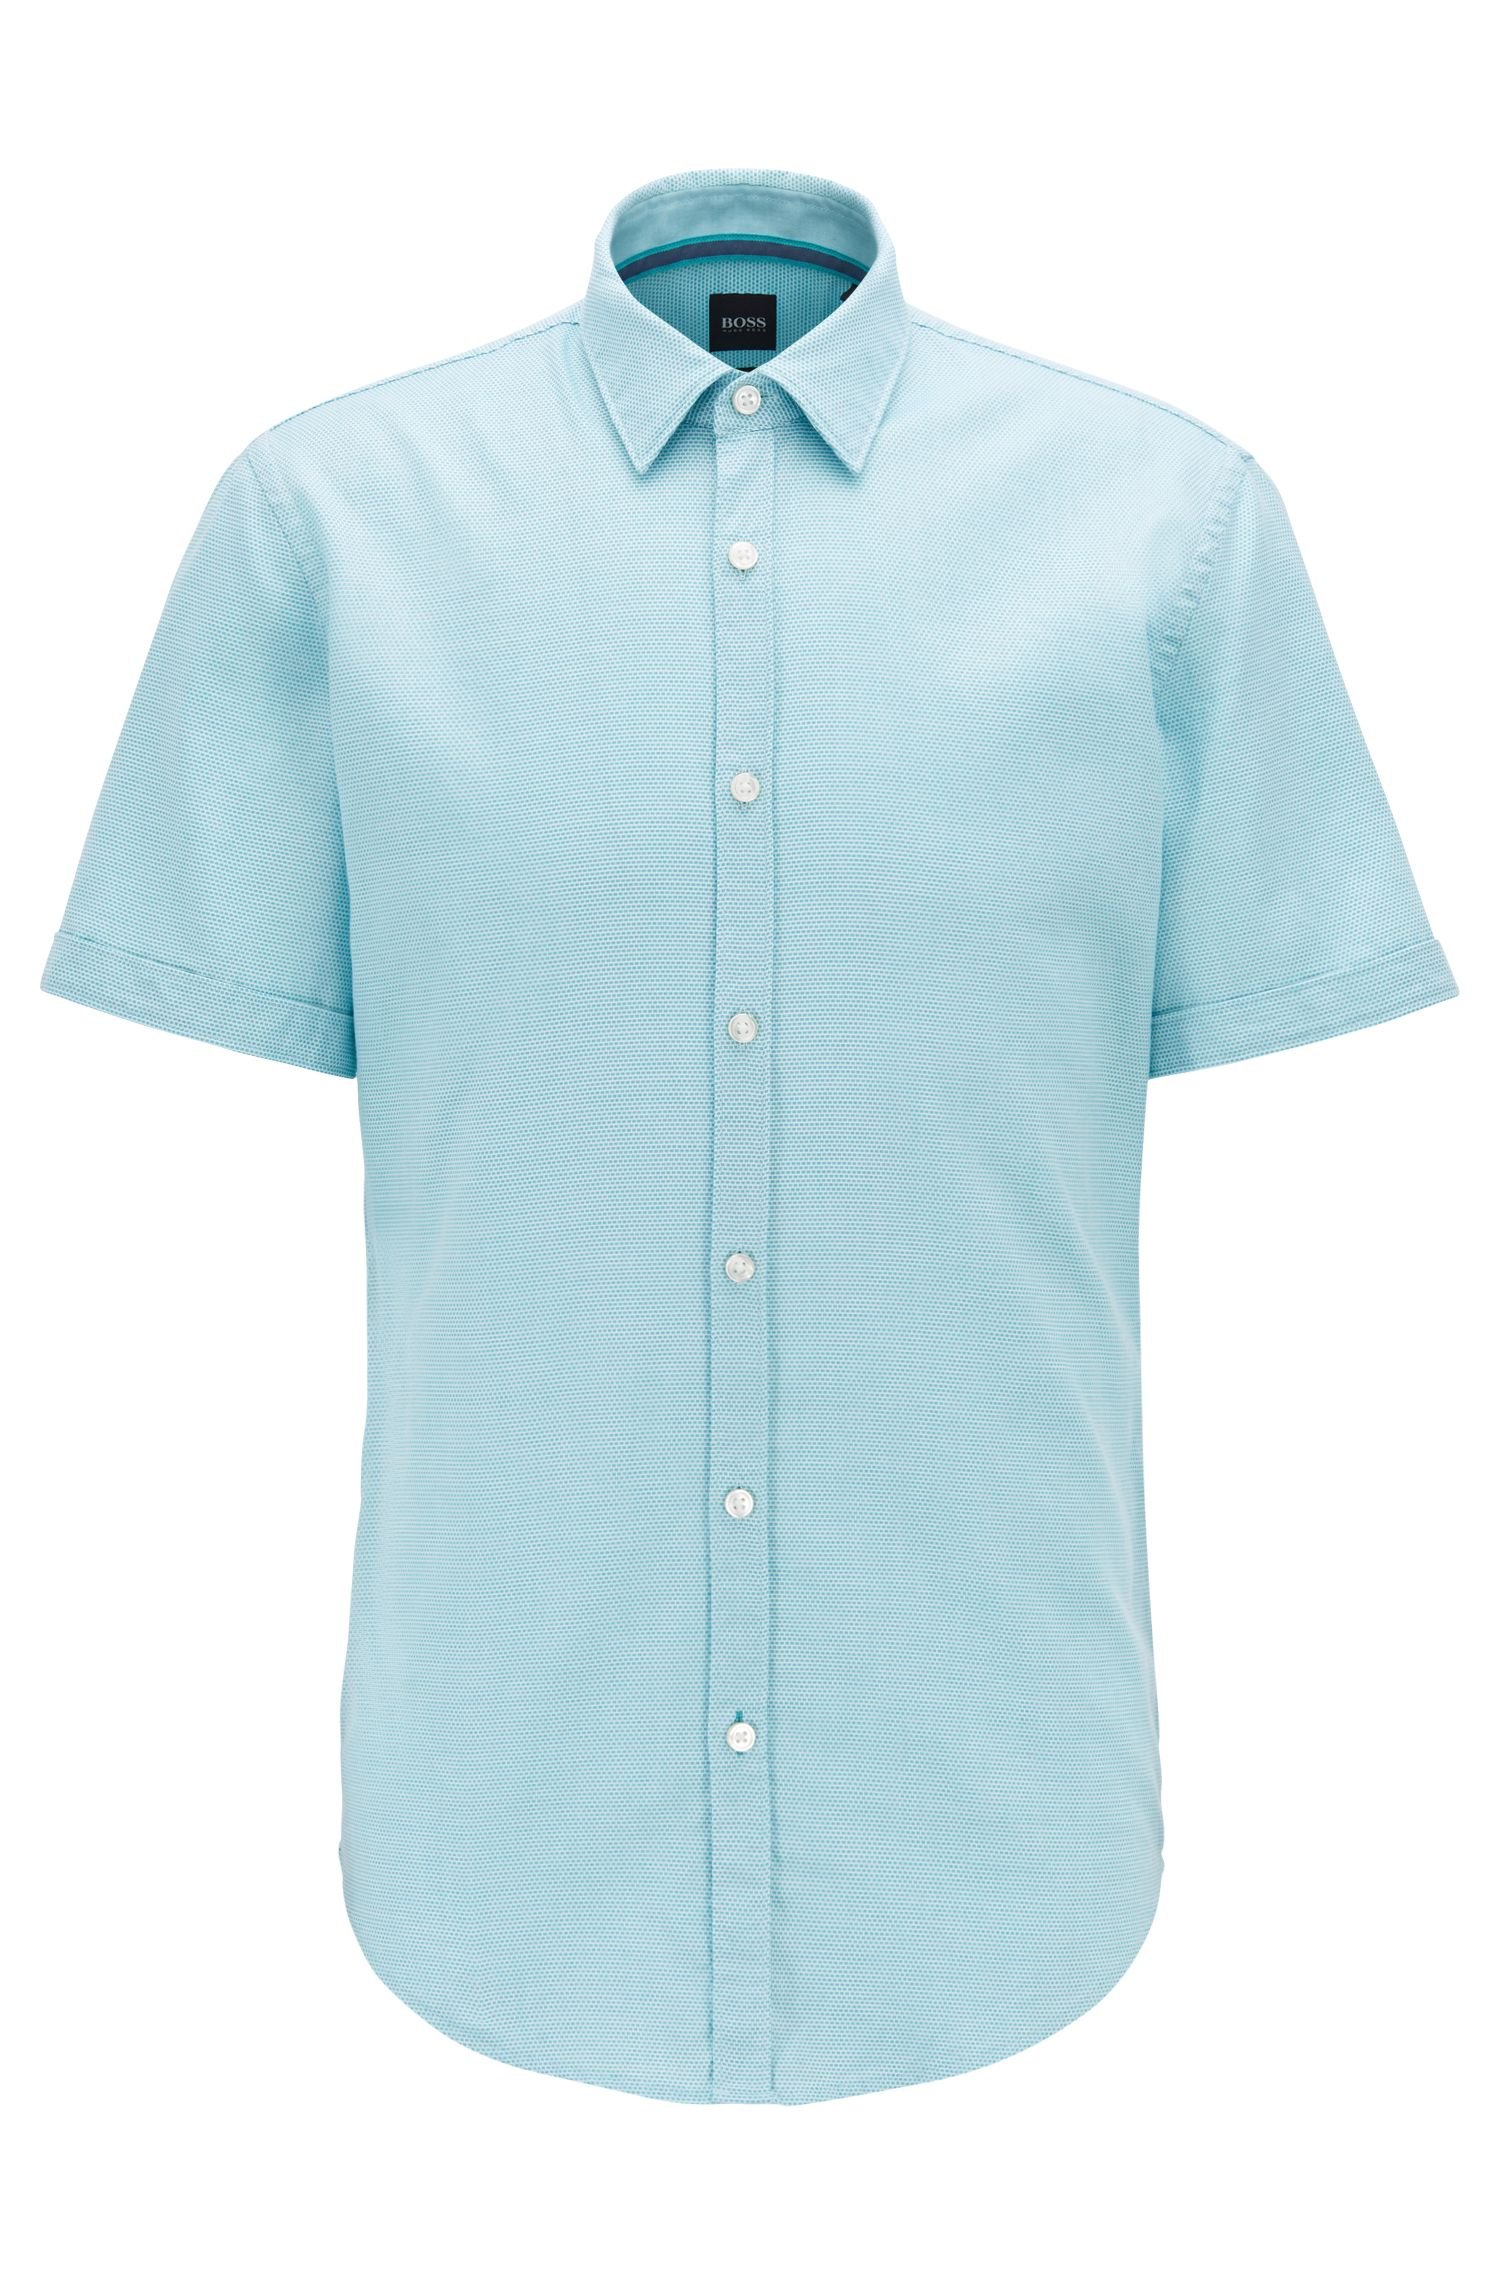 Slim-fit shirt in structured dobby cotton, Turquoise